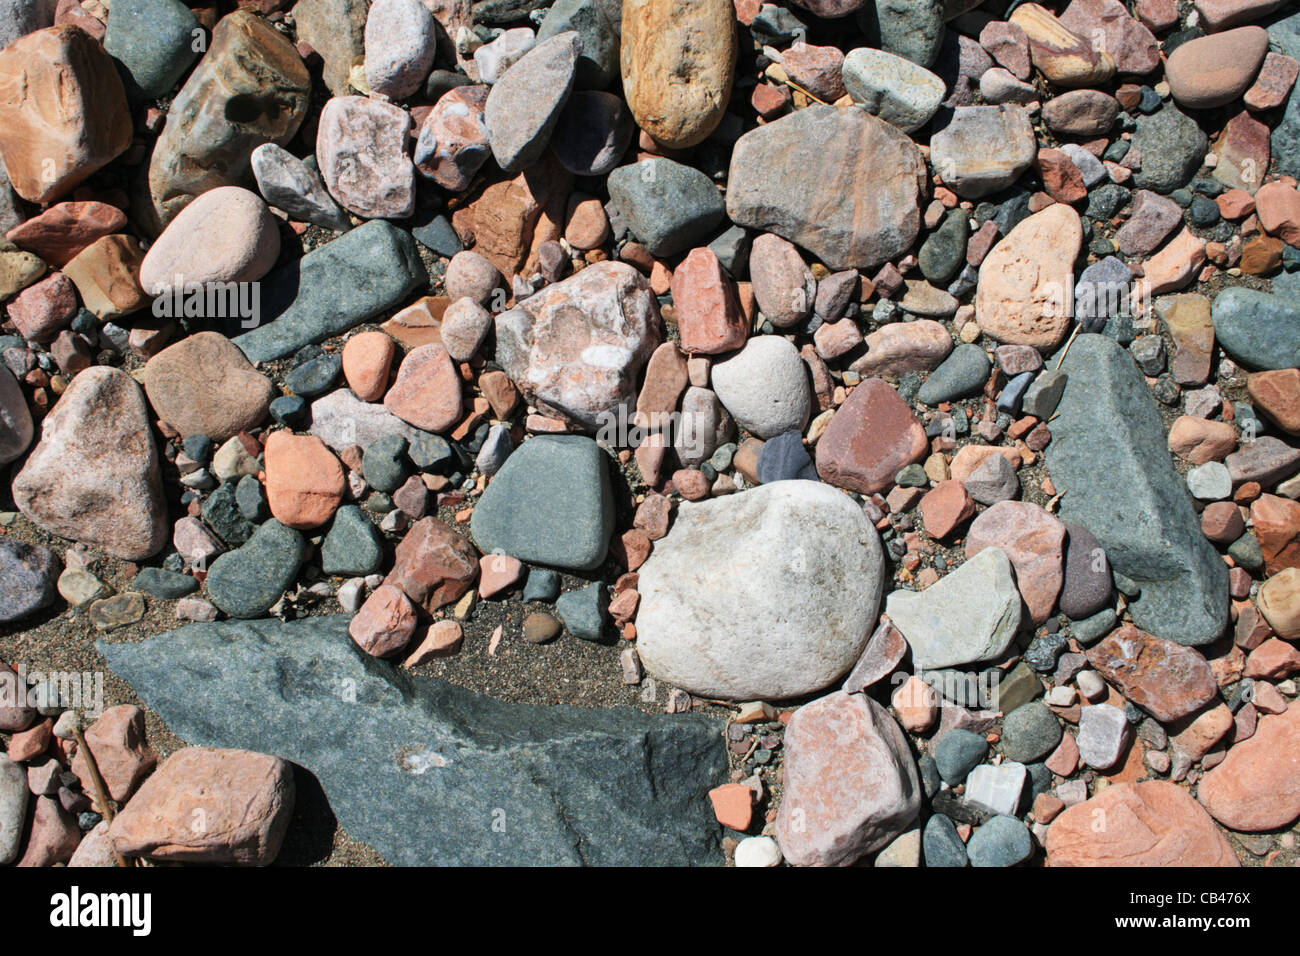 rounded smooth gray, white, and red rock and sand background - Stock Image